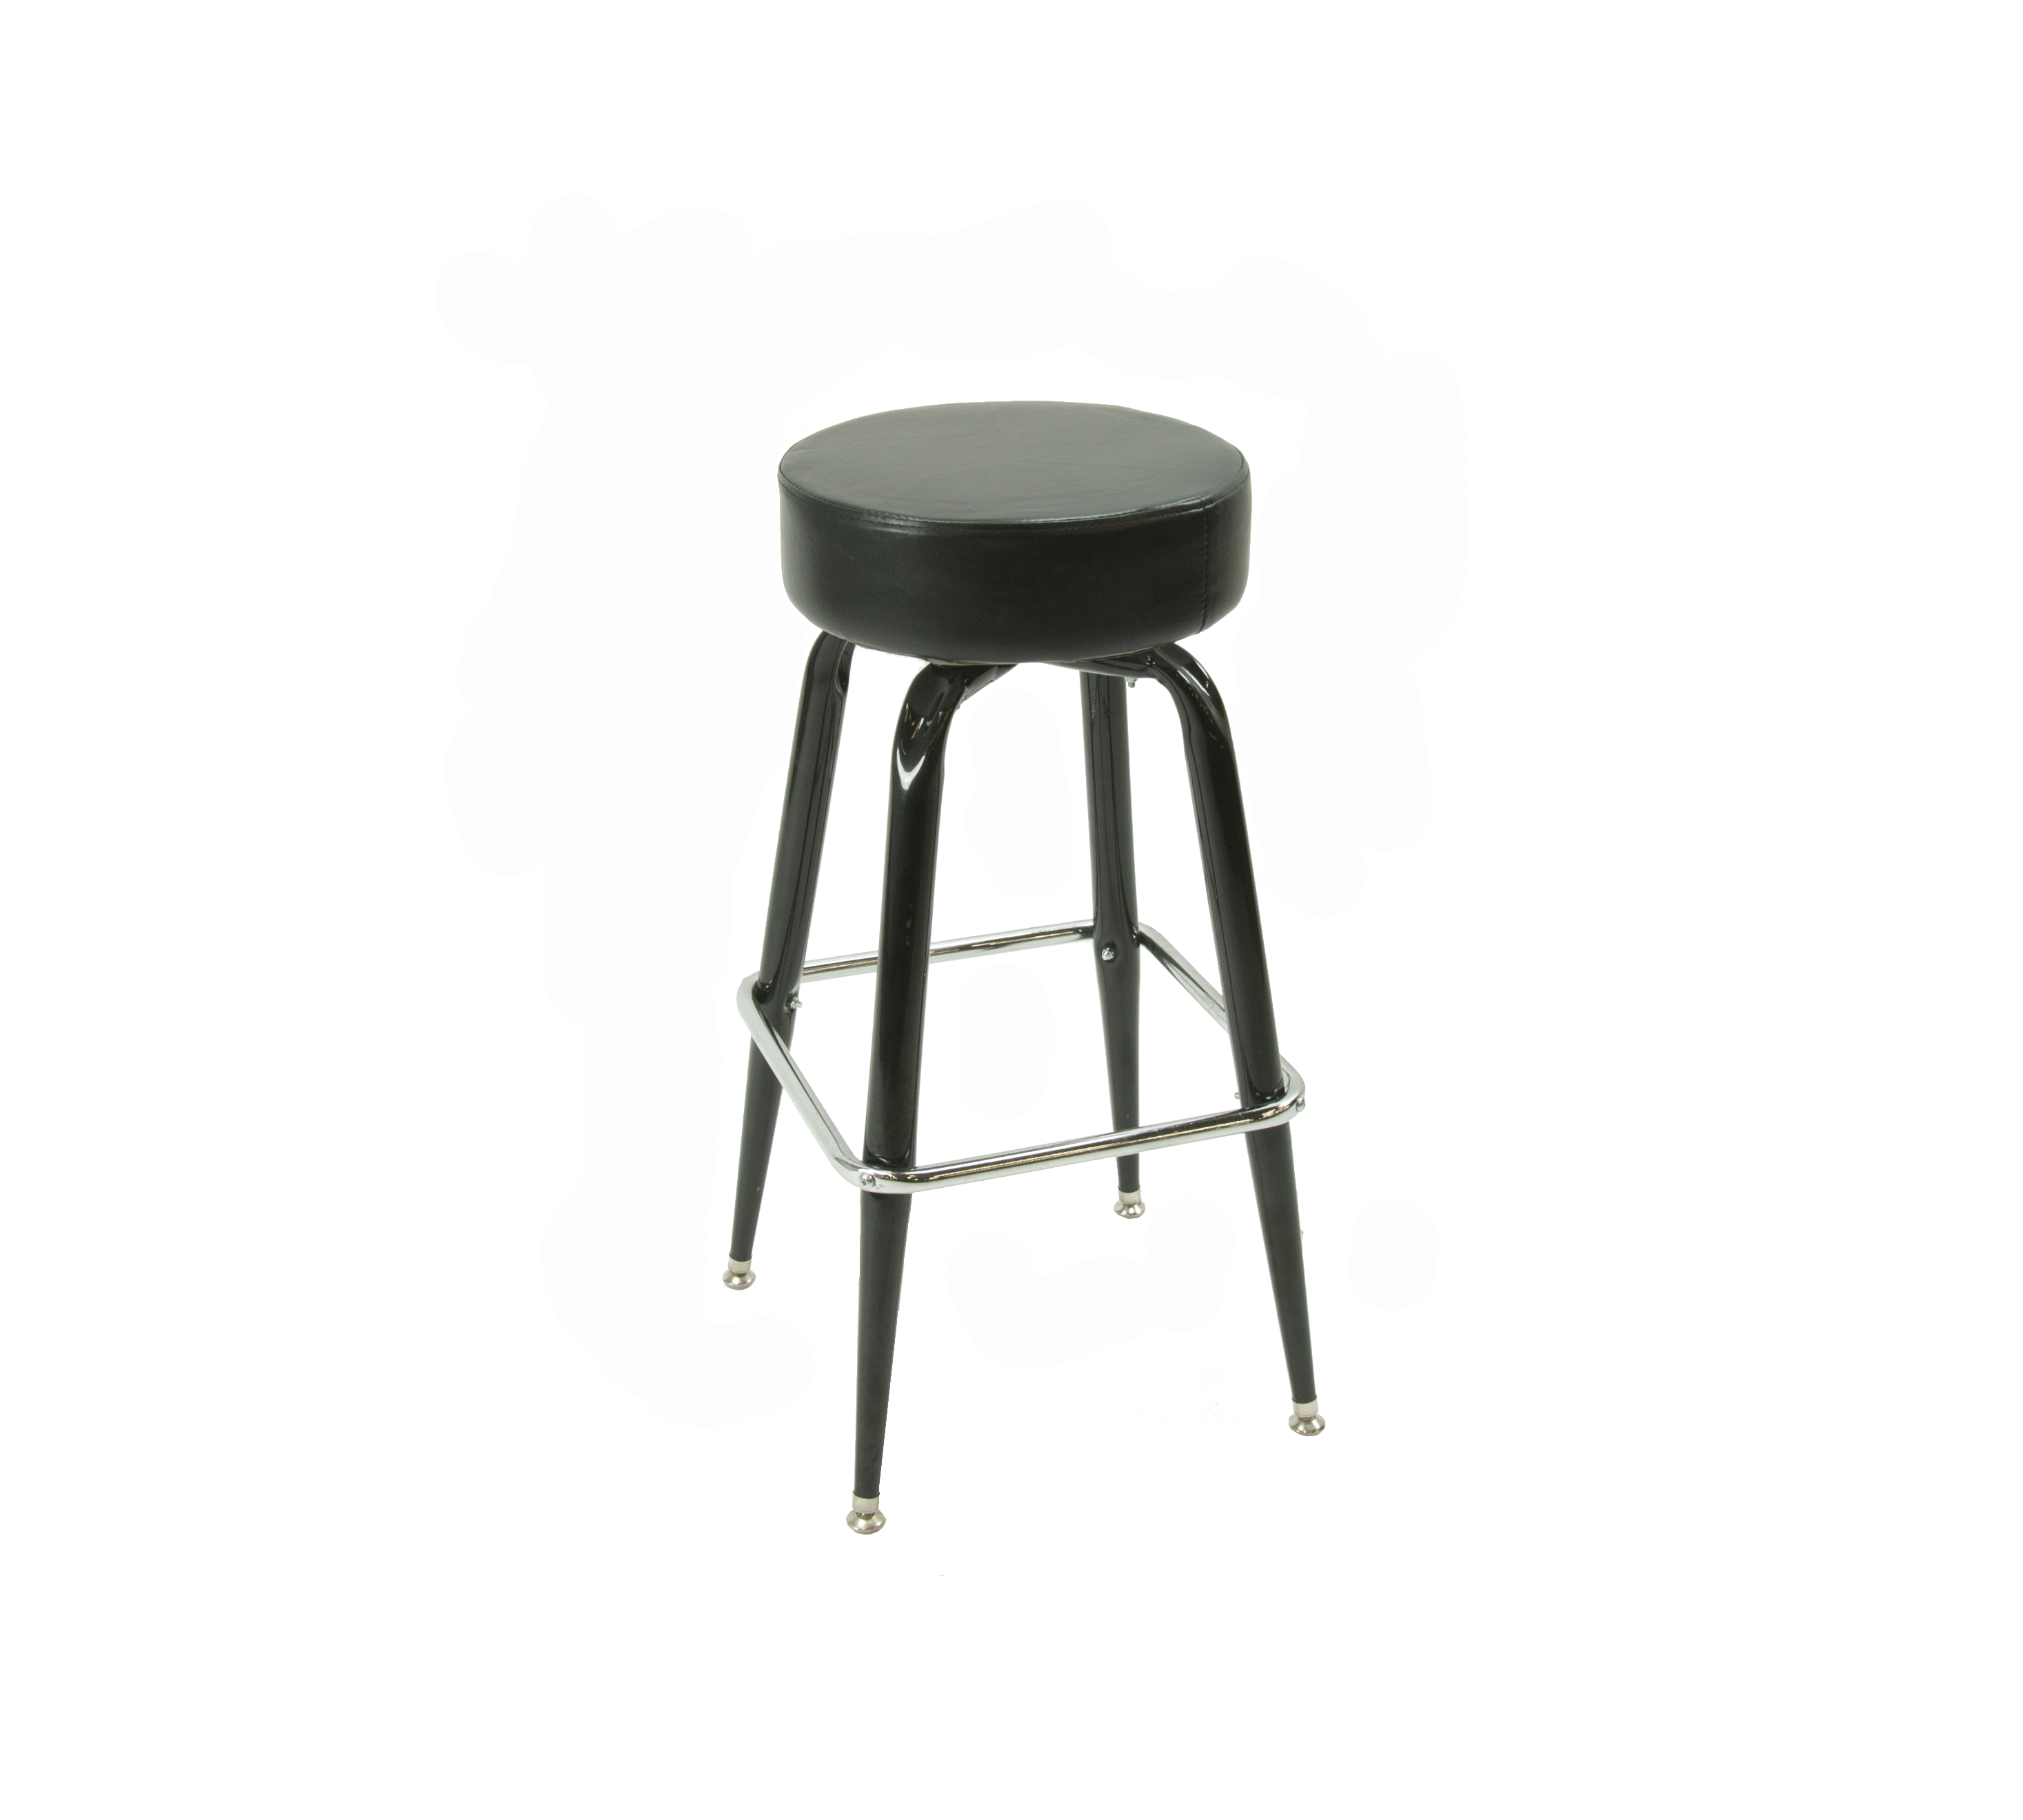 Chrome Double Ring Bar stoolsChrome Bar stools with  : SR 11 from www.equipmenthouse.com size 2934 x 2640 png 1050kB